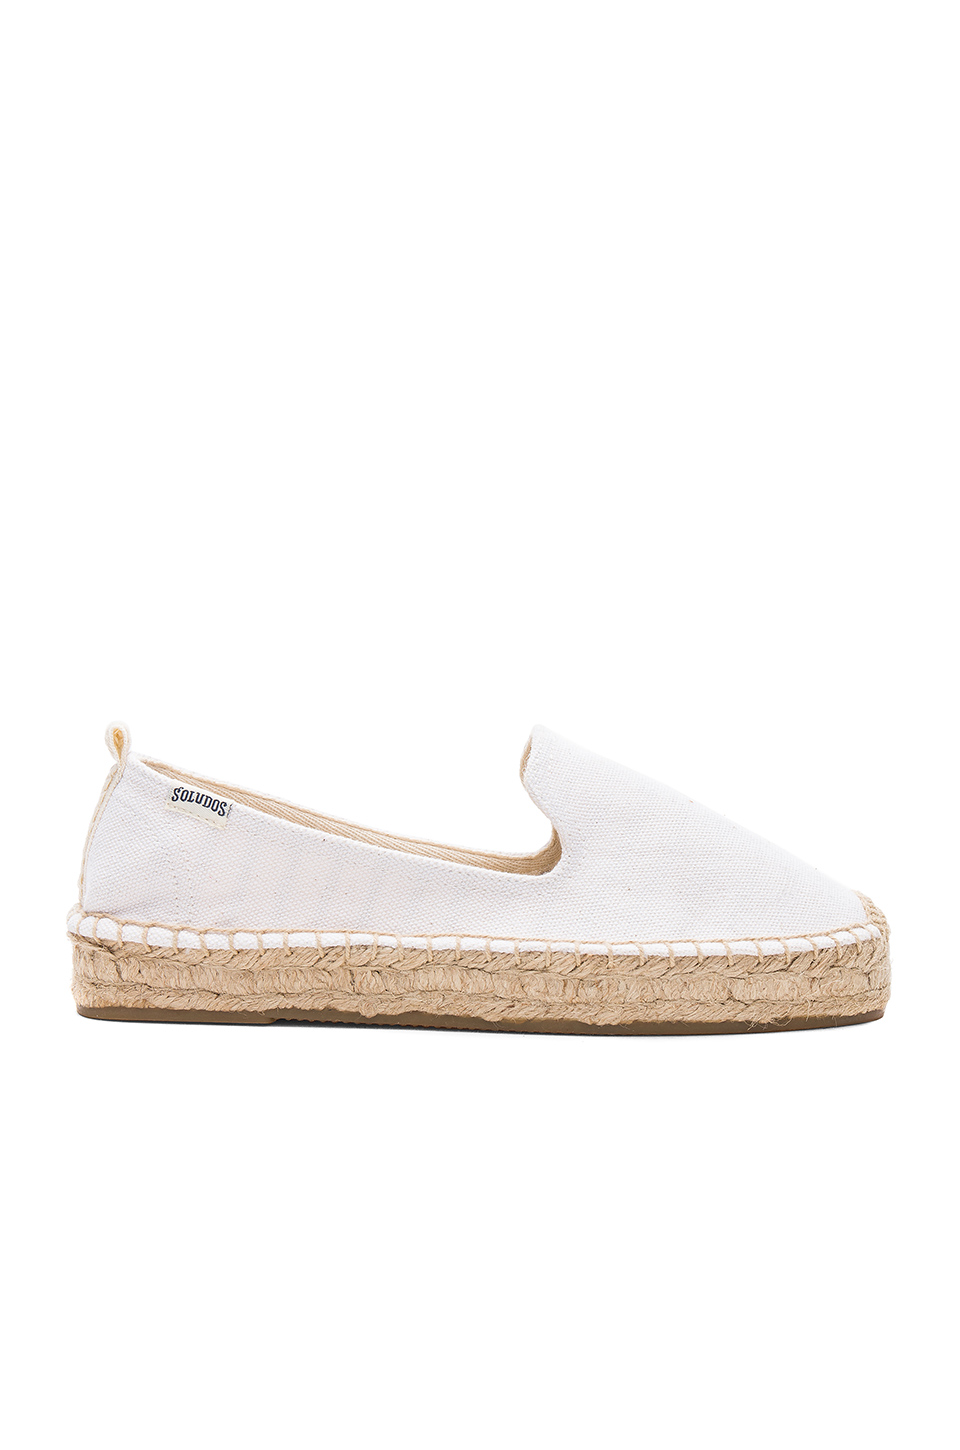 Soludos Platform Smoking Slipper in White